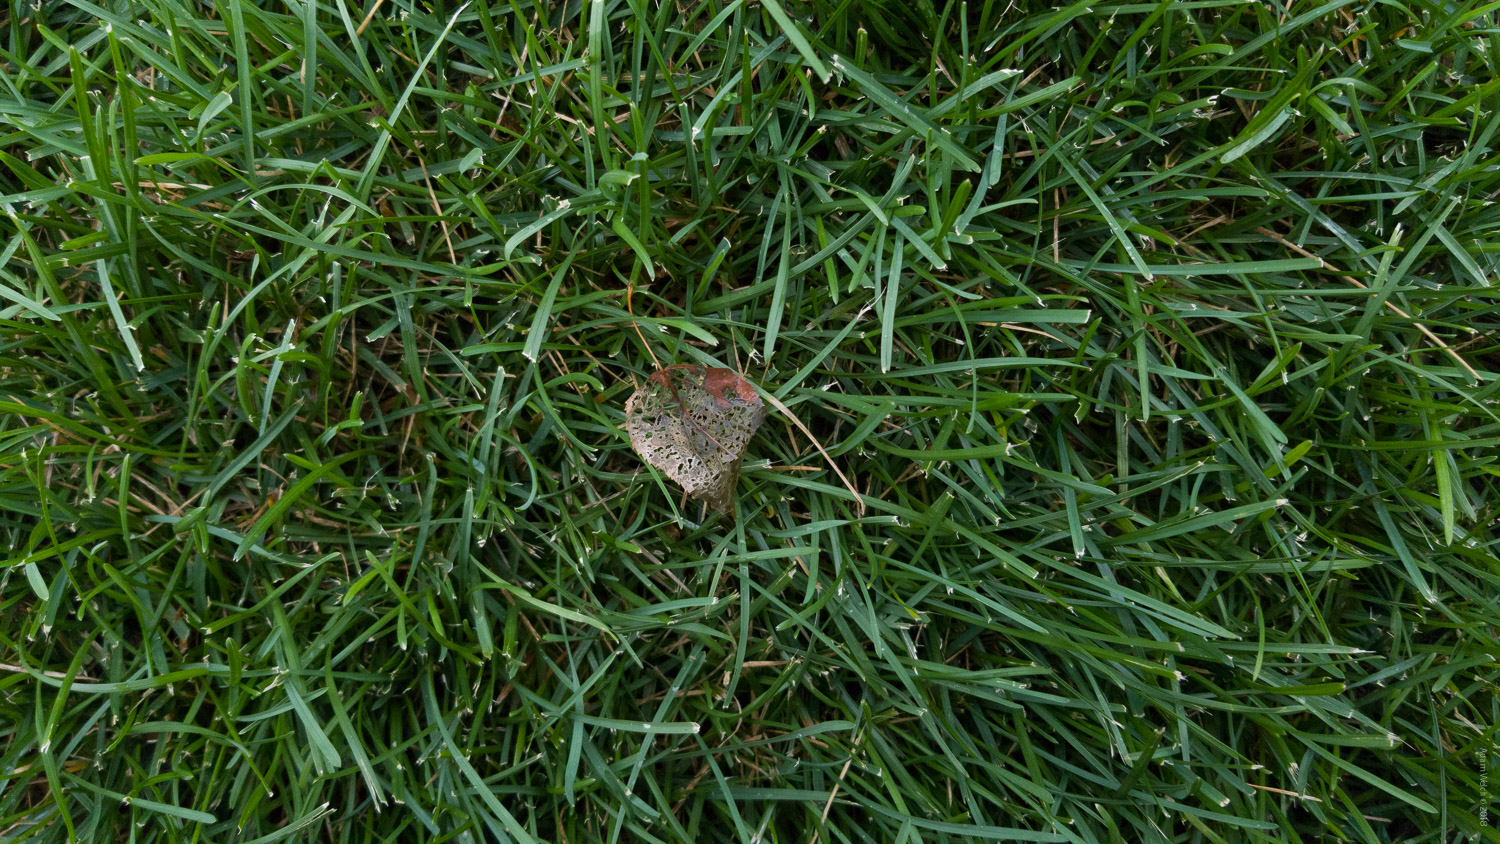 leaf on grass - Mobile Phones Versus DSLRs